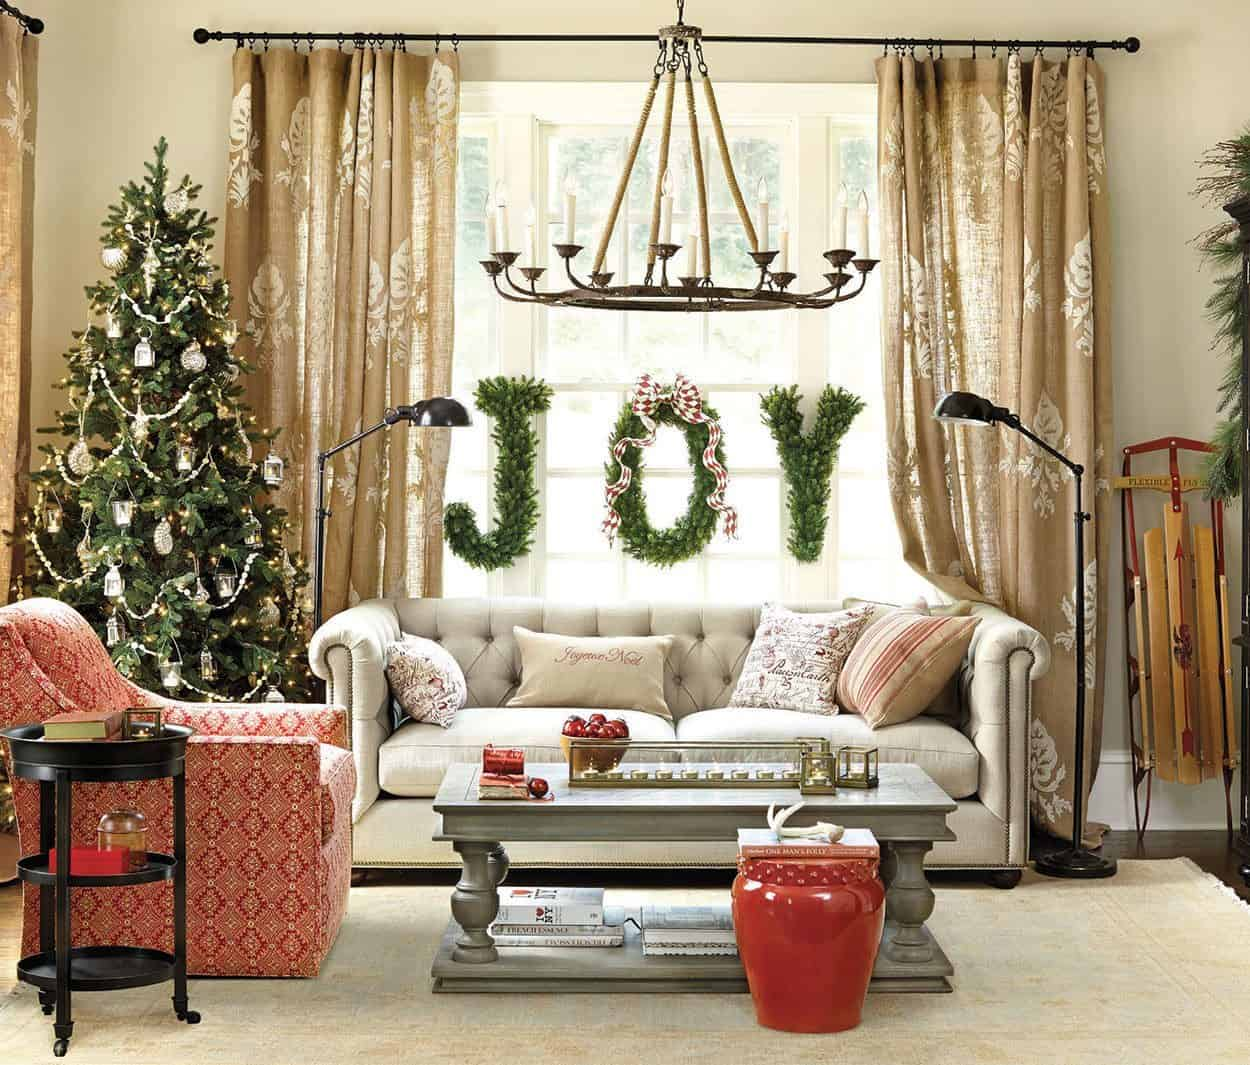 40 christmas decorated spaces to put you in a holiday mood for Elle decor india contact